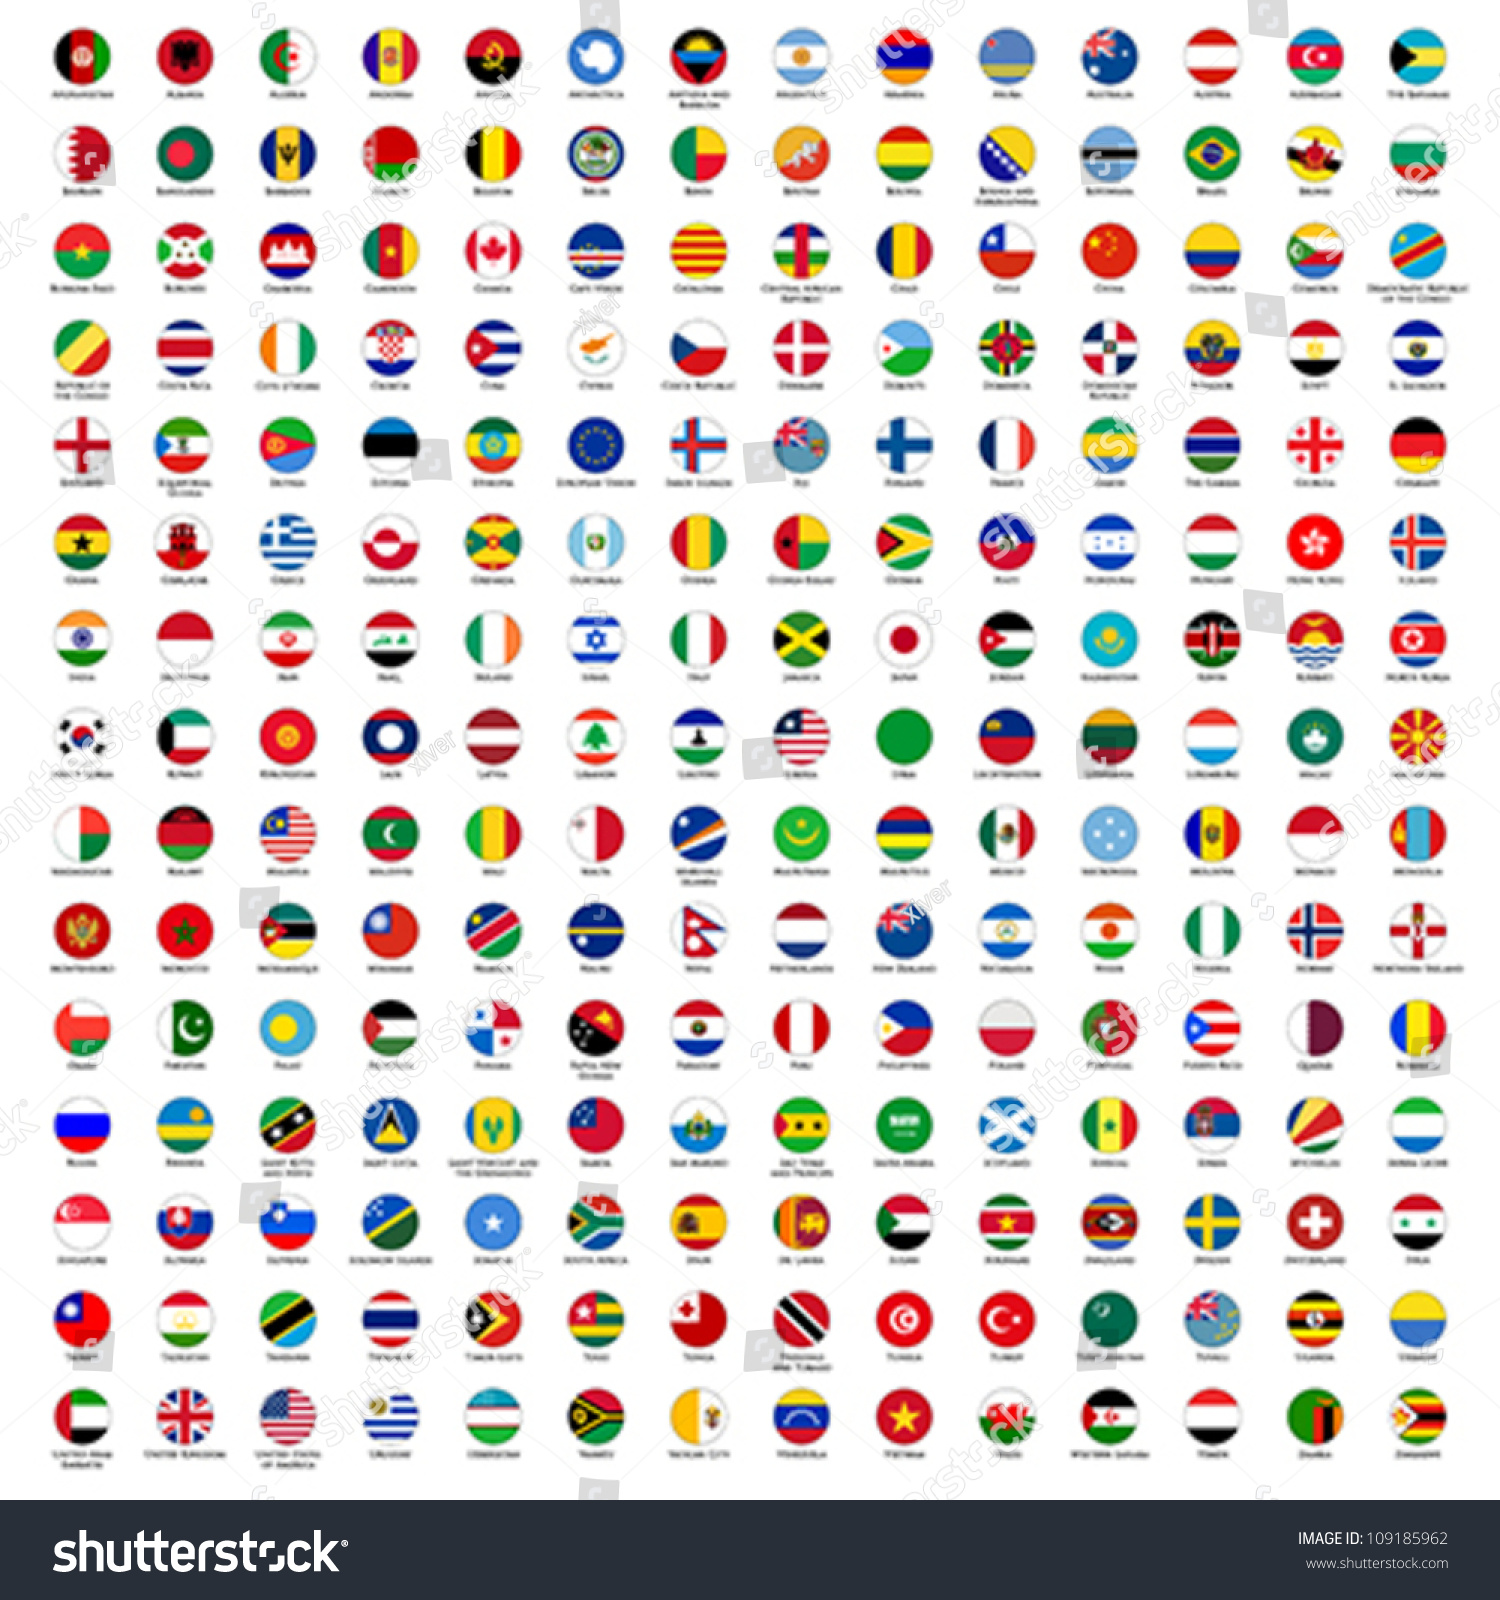 alphabetically sorted circle flags of the world with official RGB coloring and detailed emblems #109185962